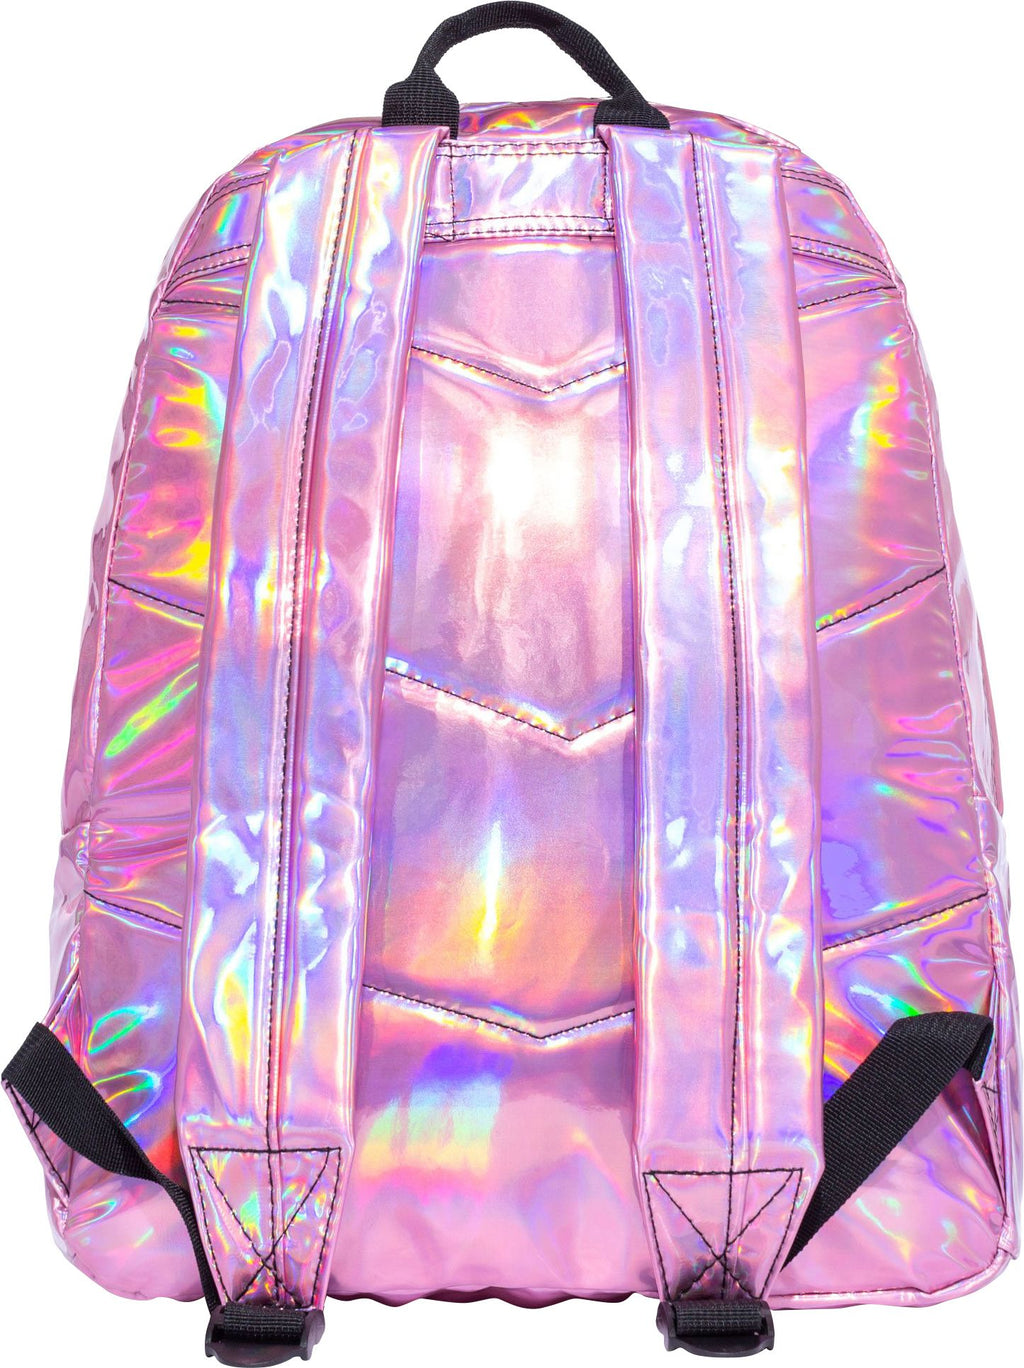 Hype Holographic Mix Backpack Bag Pink